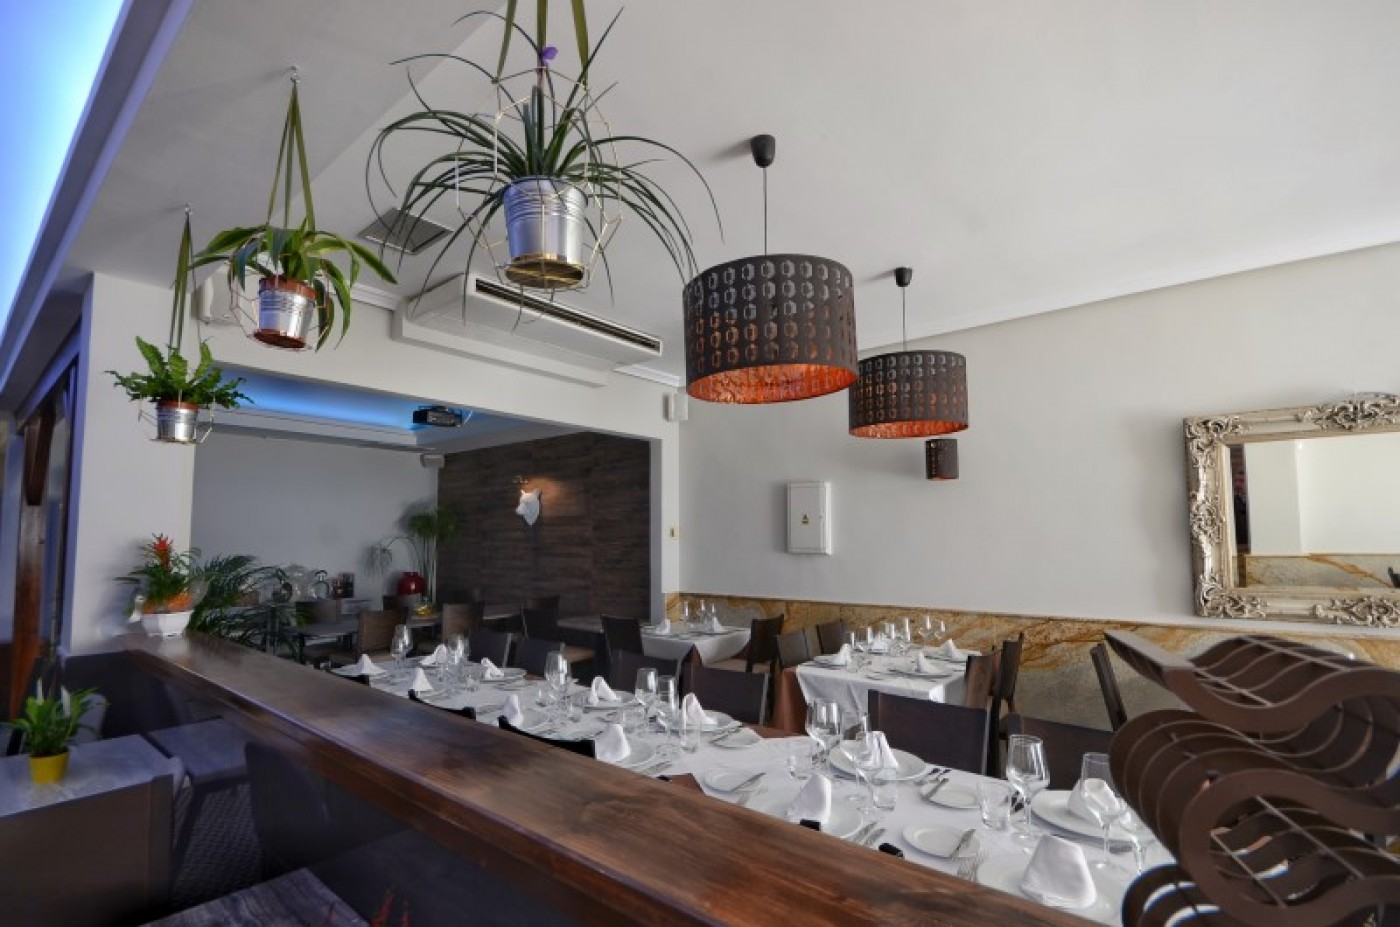 The Oso Blanco in Fuente Álamo offers the best of British and Mediterranean cuisine